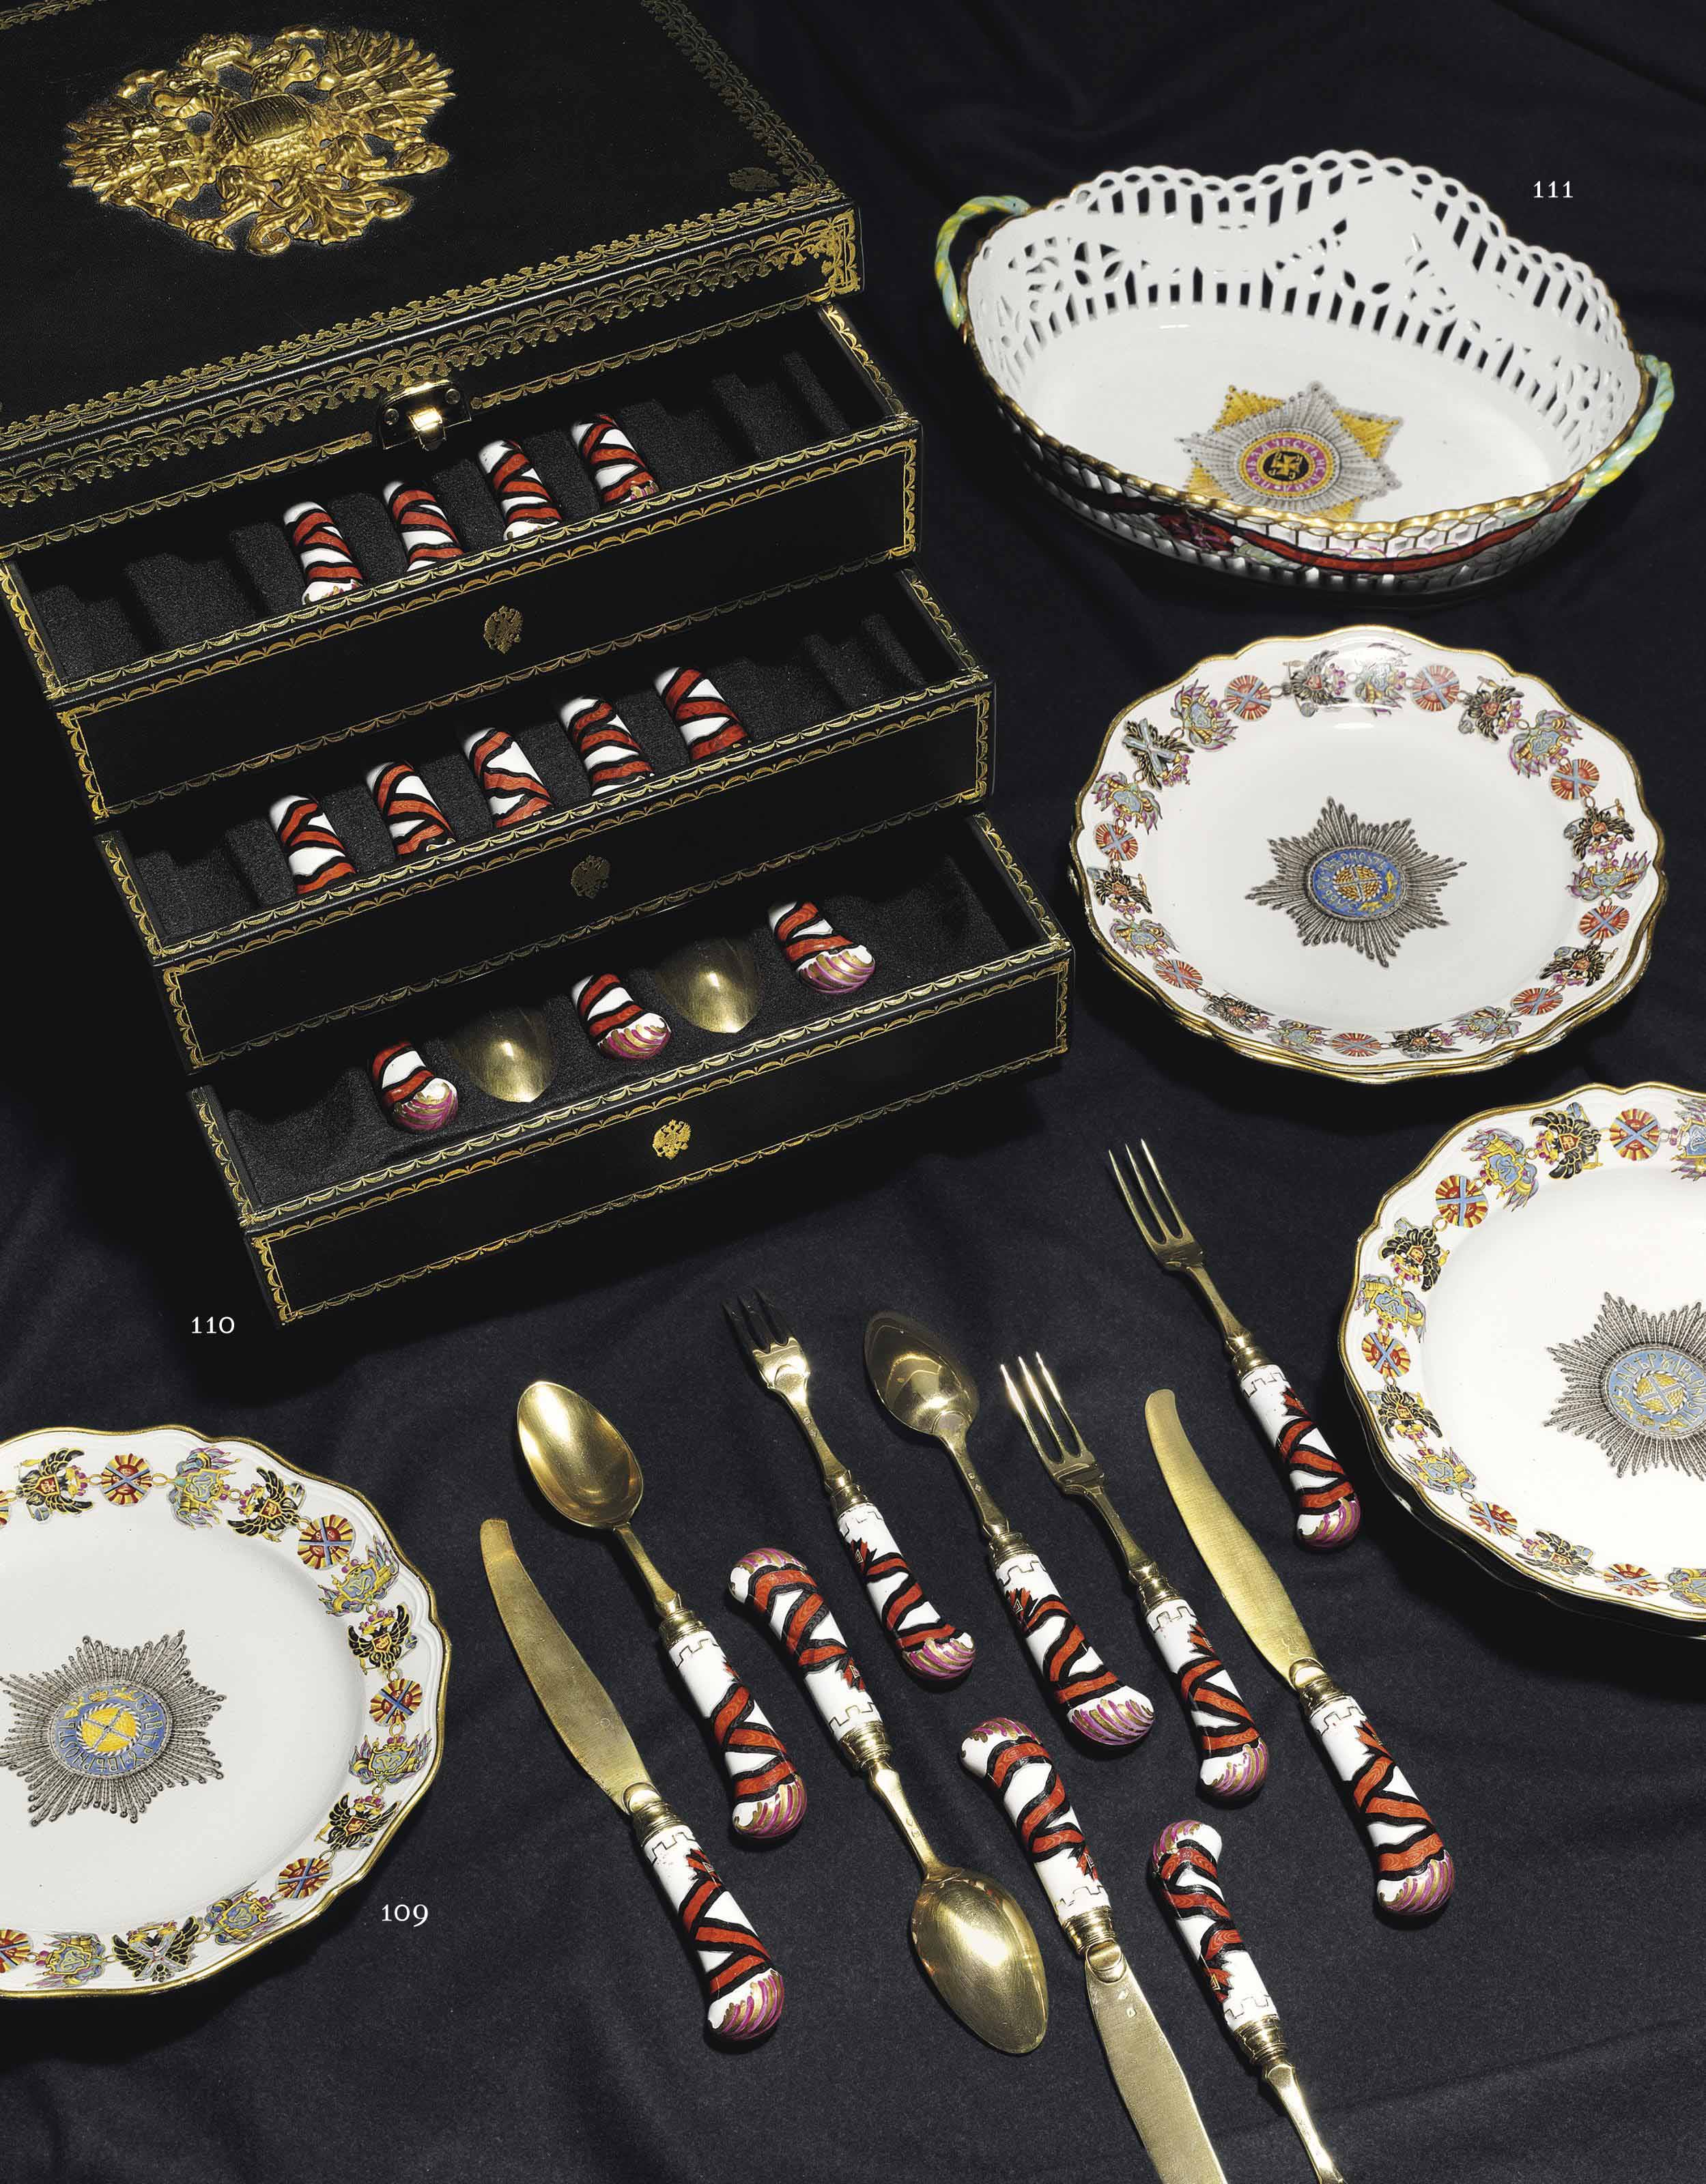 A SILVER-GILT MOUNTED PORCELAIN FRUIT SET FROM THE SERVICE OF THE ORDER OF ST. VLADIMIR